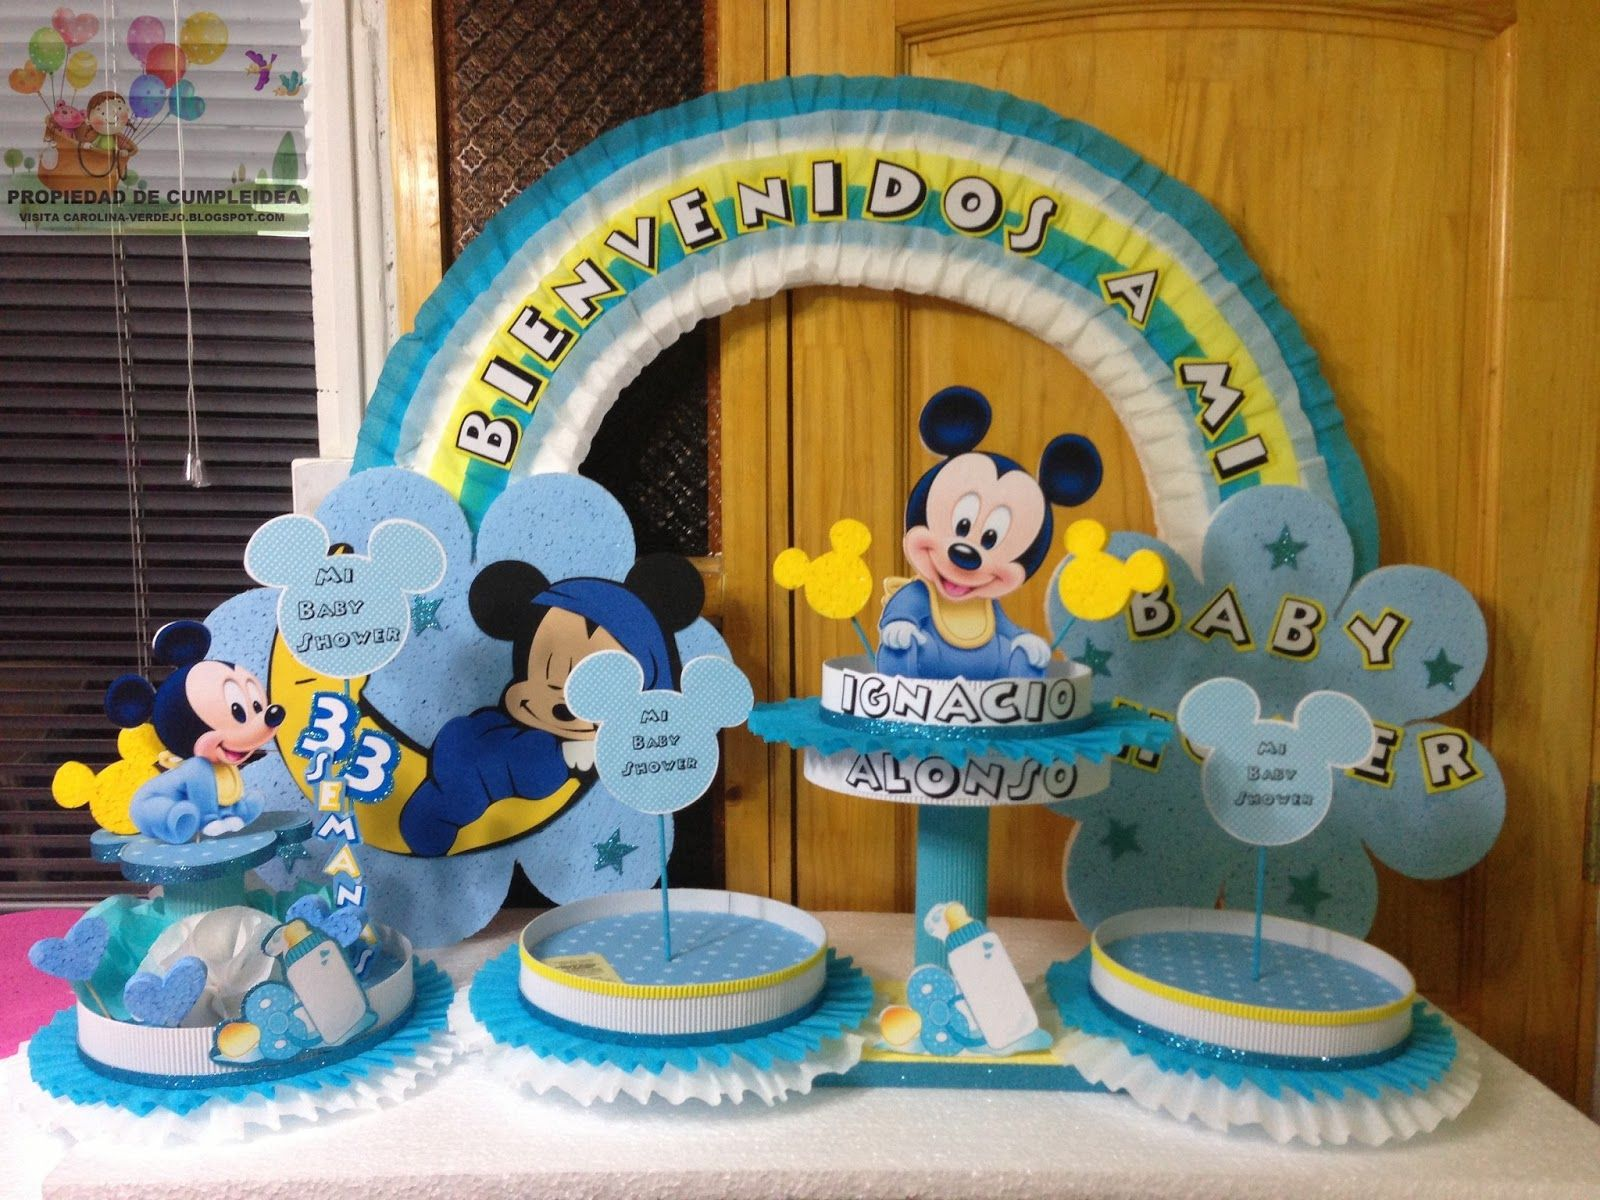 Decoraciones Para Un Cumpleaños De Niña Baby Mickey Mouse Baby Shower Ecorations Decoraciones